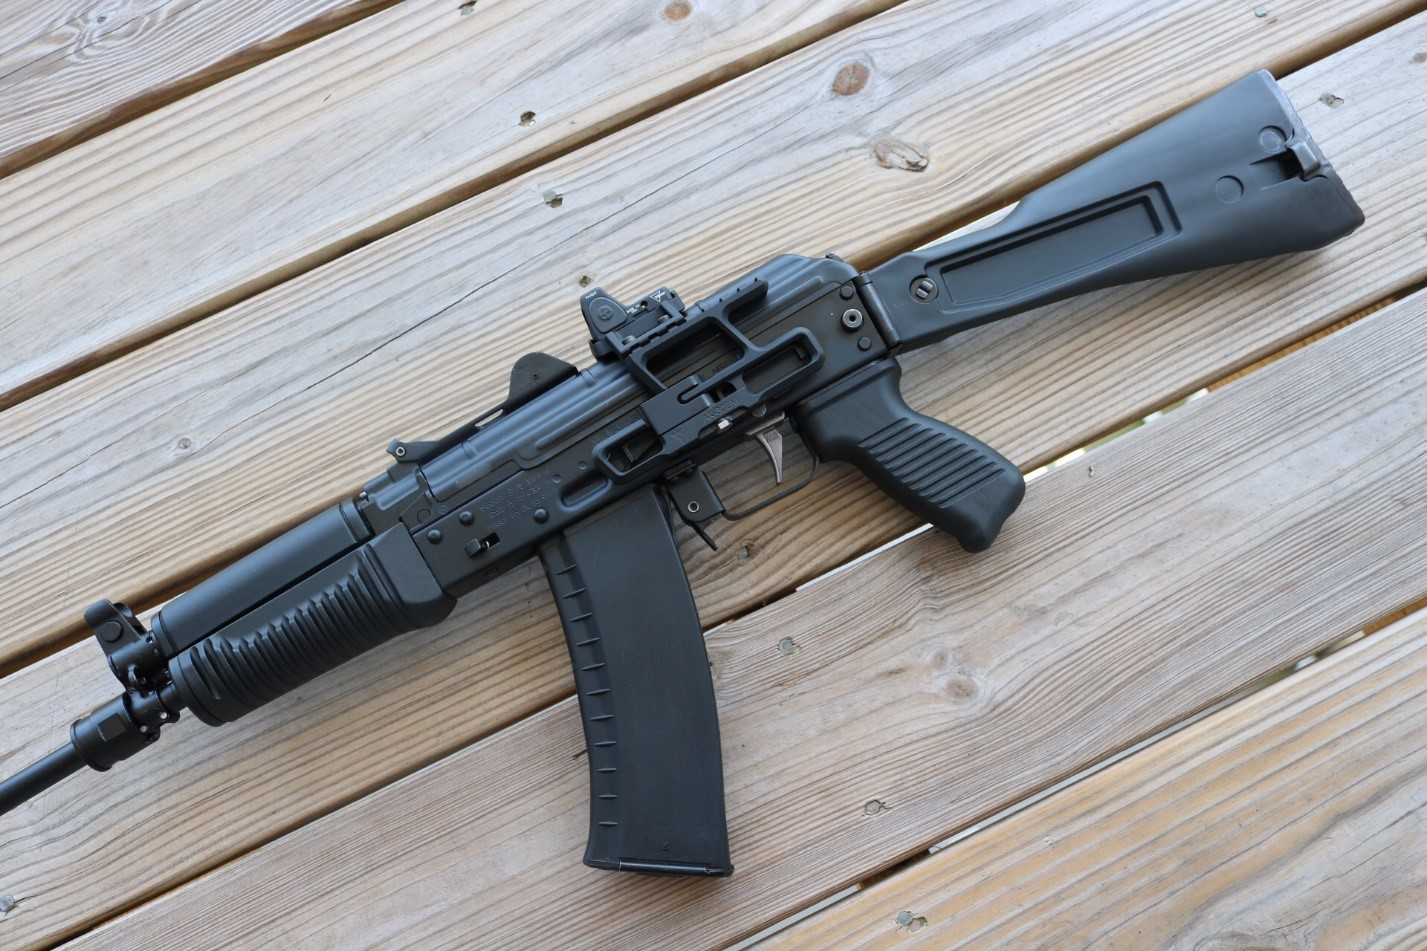 RMR on an AK? RS Regulate's New AKMR - The K-Var Armory